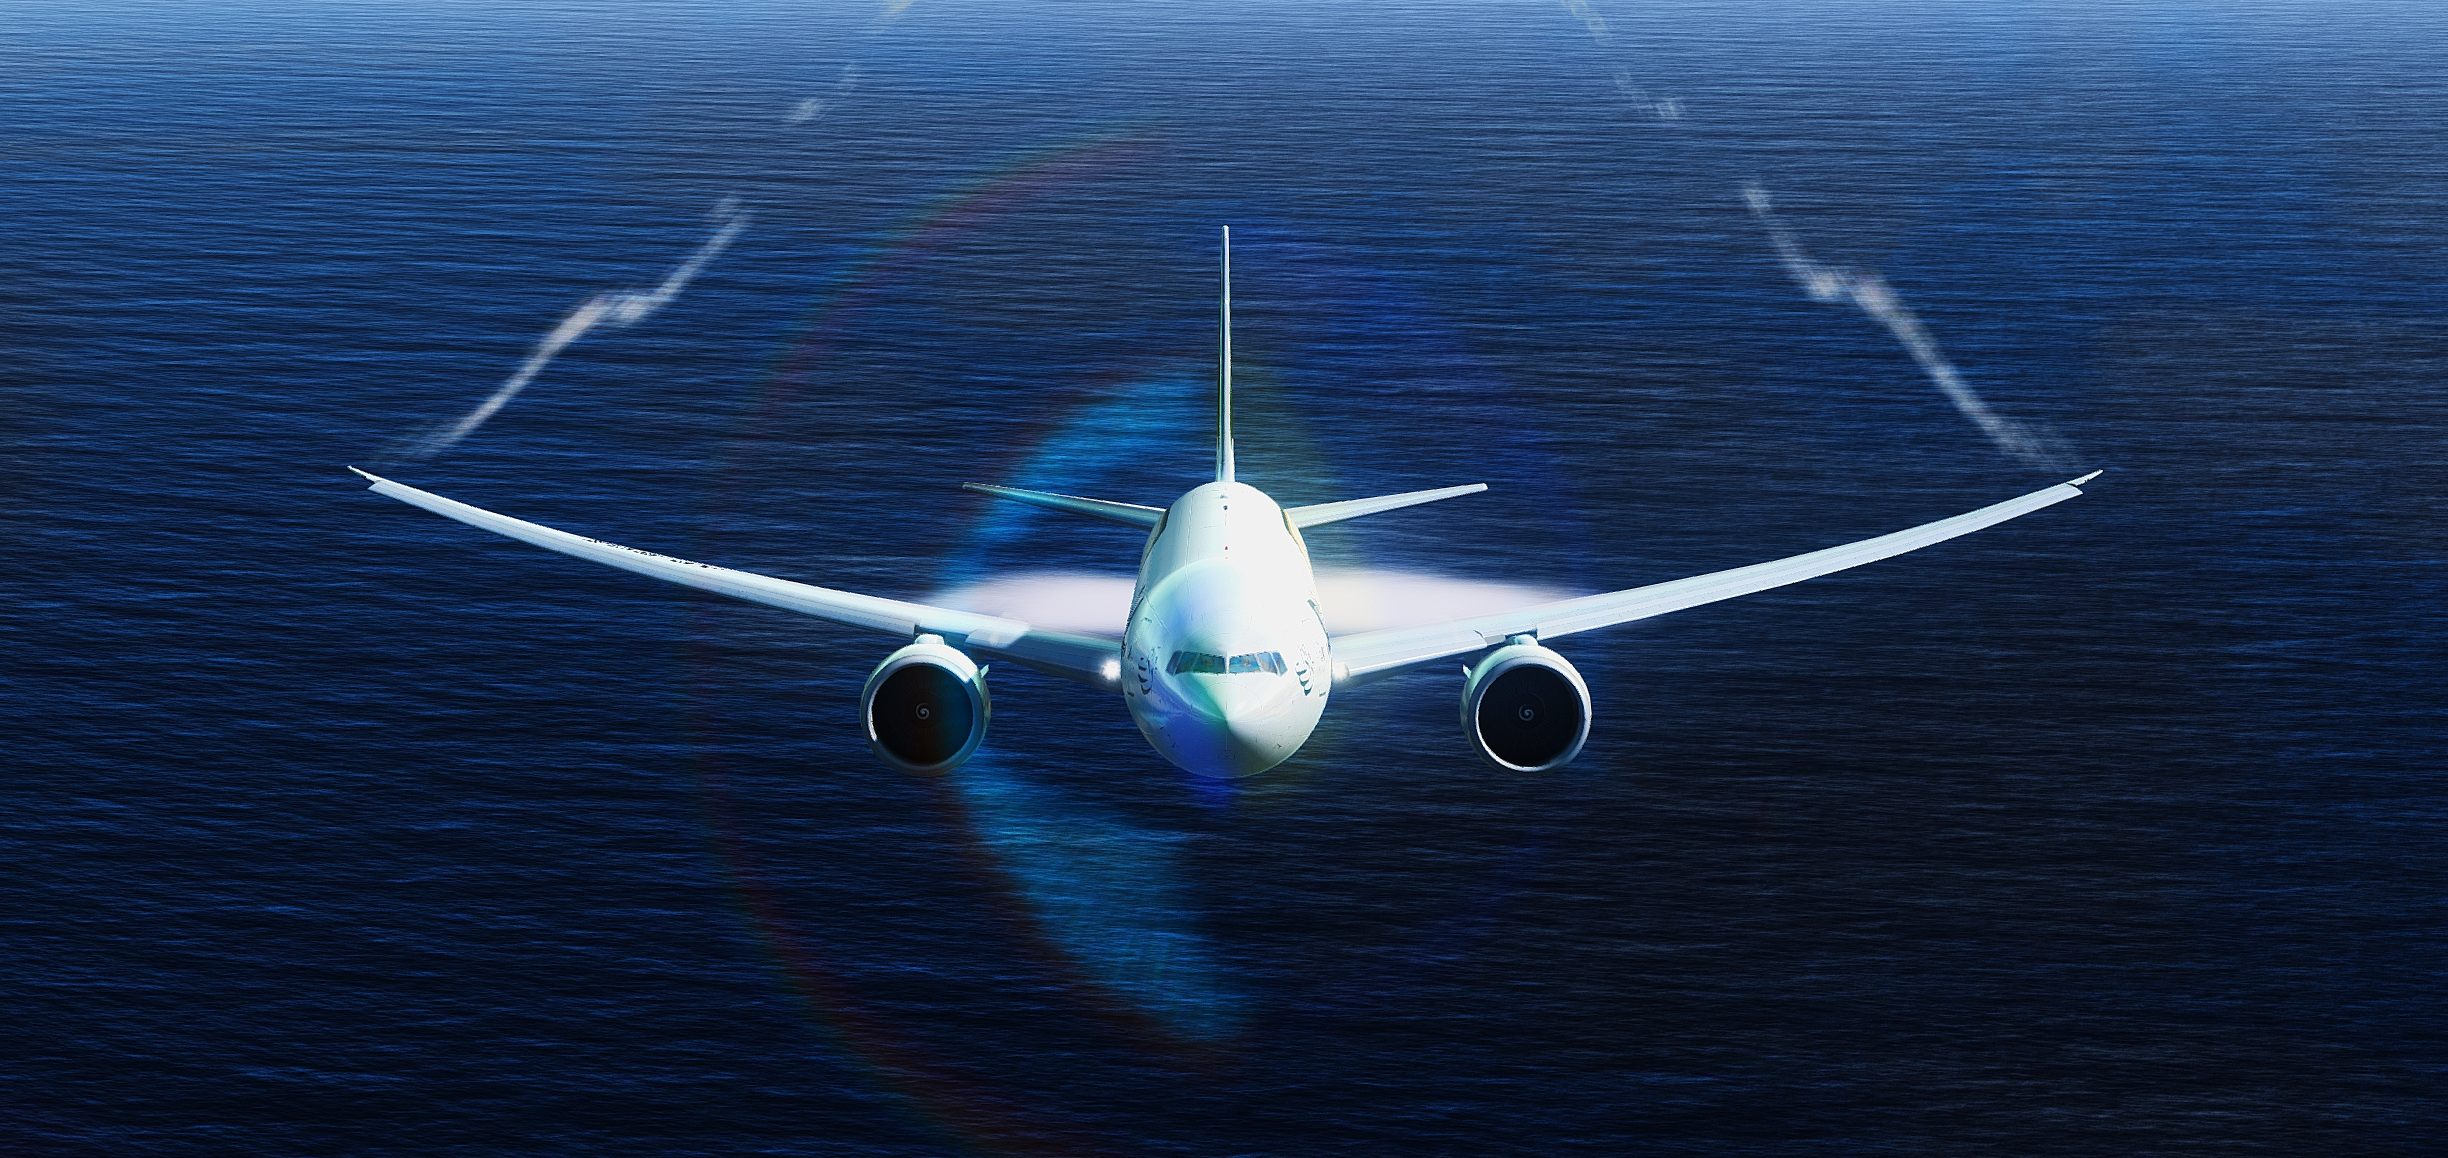 fsx%202015-07-05%2014-03-39-145.png?dl=0